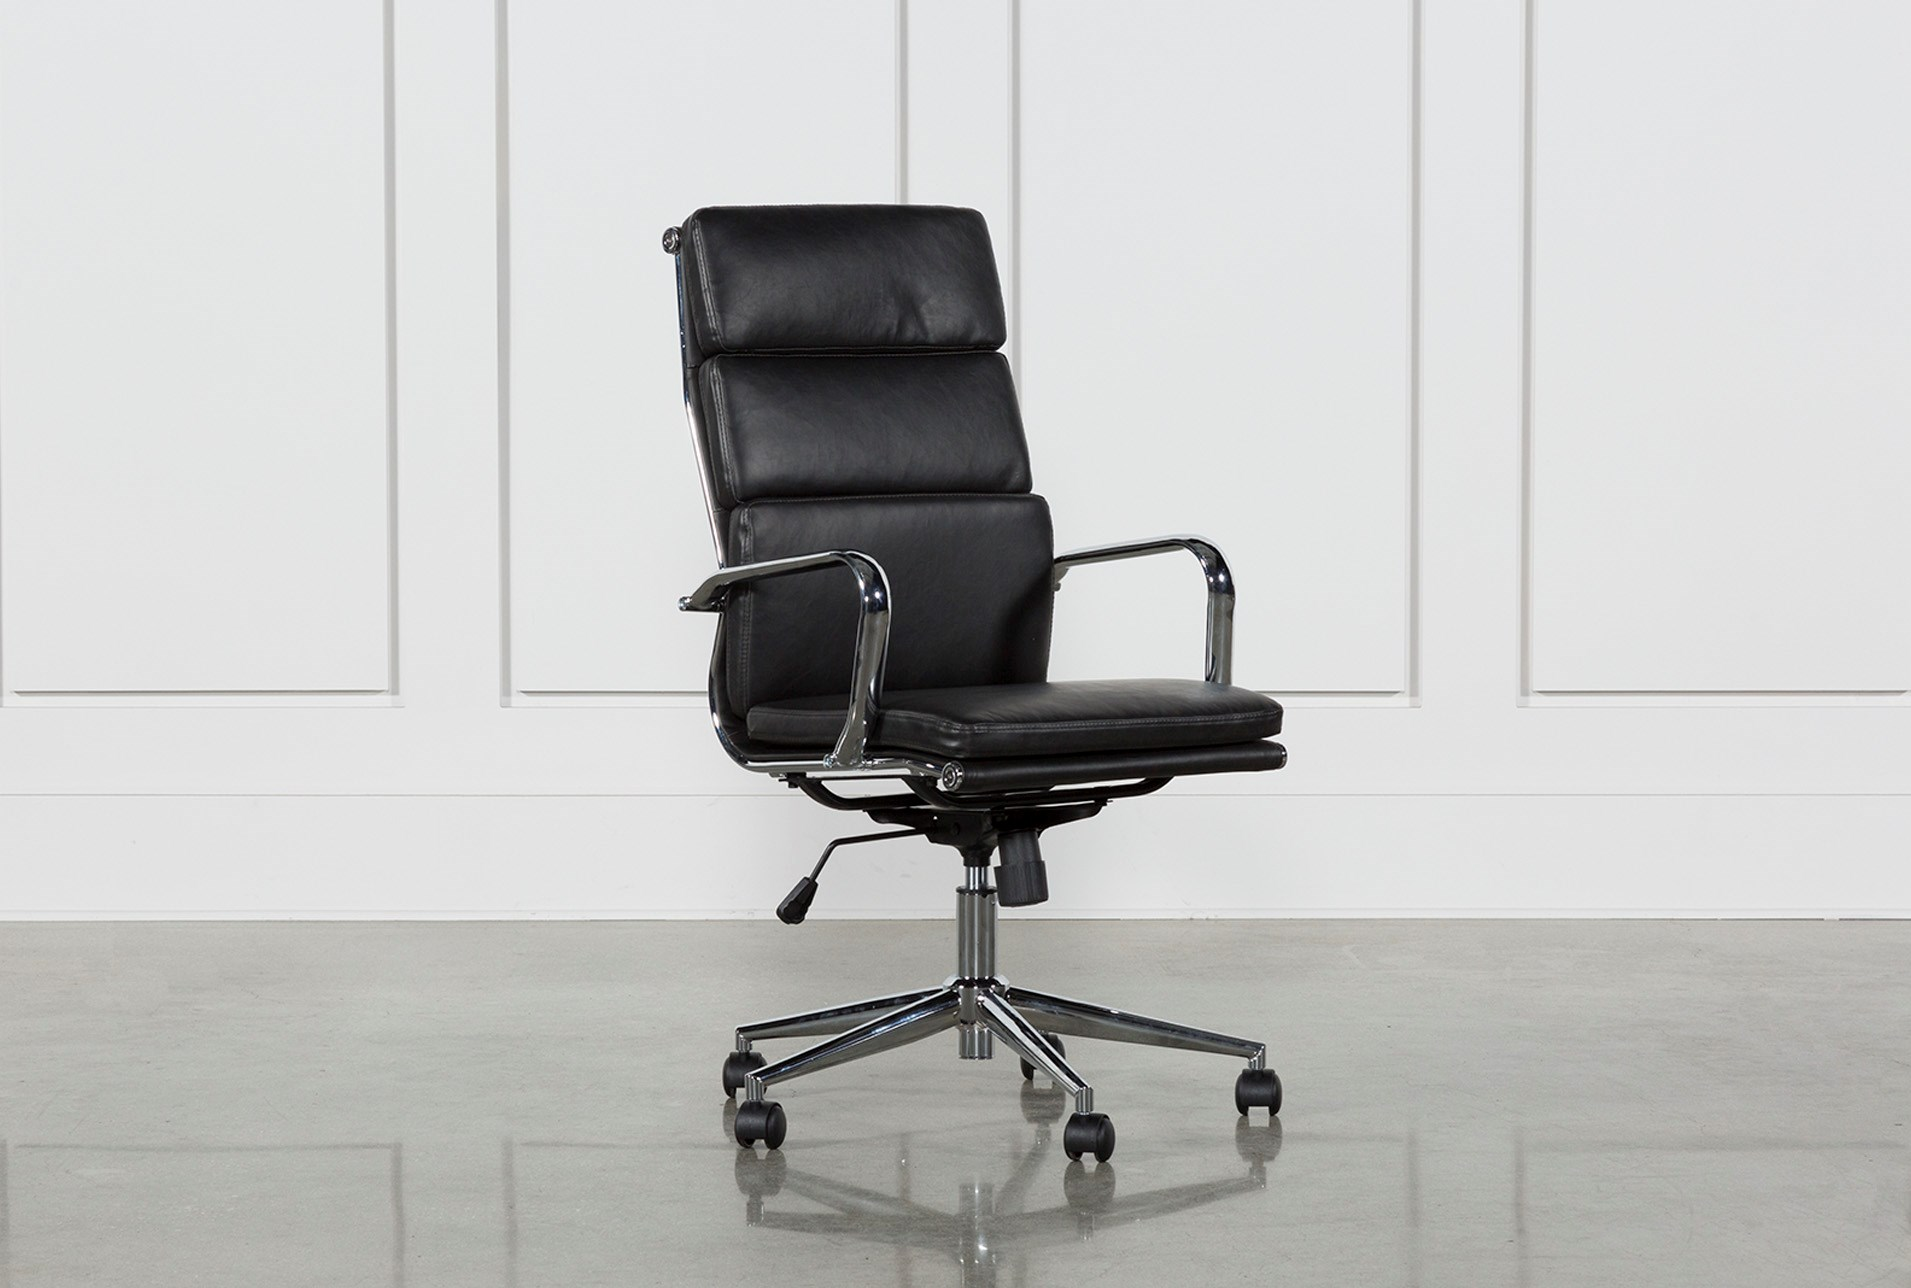 Moby Black High Back Office Chair Qty 1 Has Been Successfully Added To Your Cart